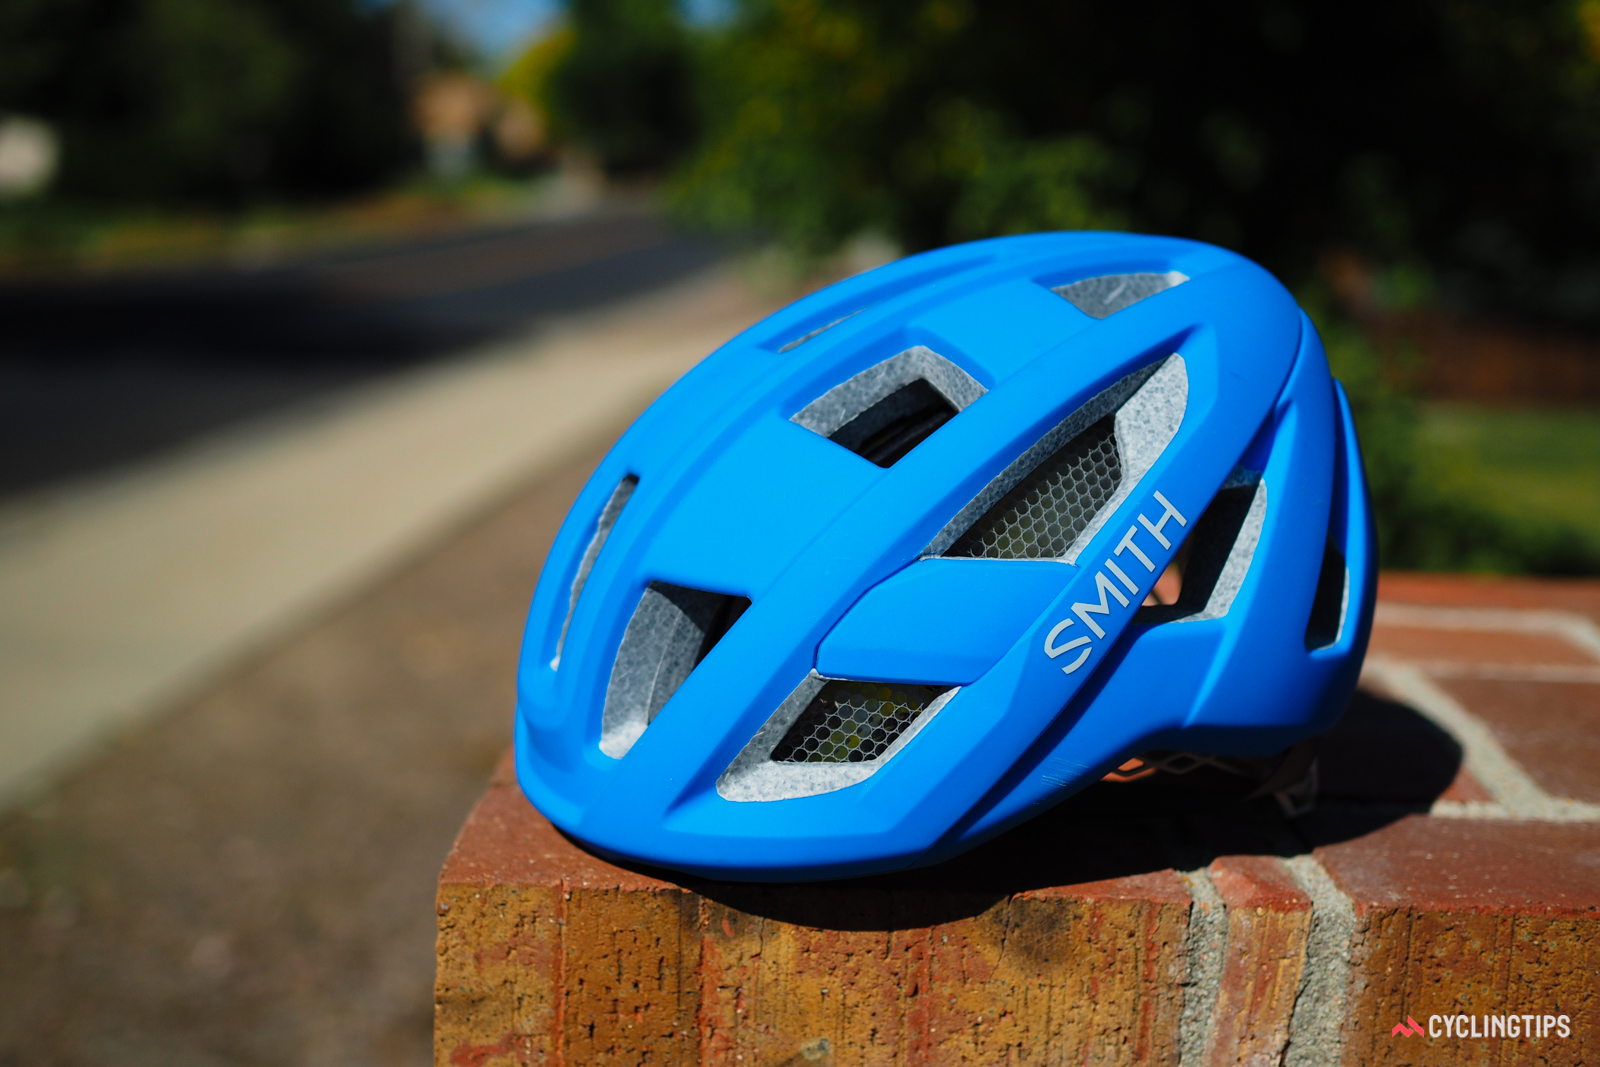 Smith Optics has followed up on its first two Koroyd-equipped helmets with two lower-priced options. The road-oriented Route uses smaller panels of Koroyd that are placed strategically where Smith says riders are most likely to hit their heads.